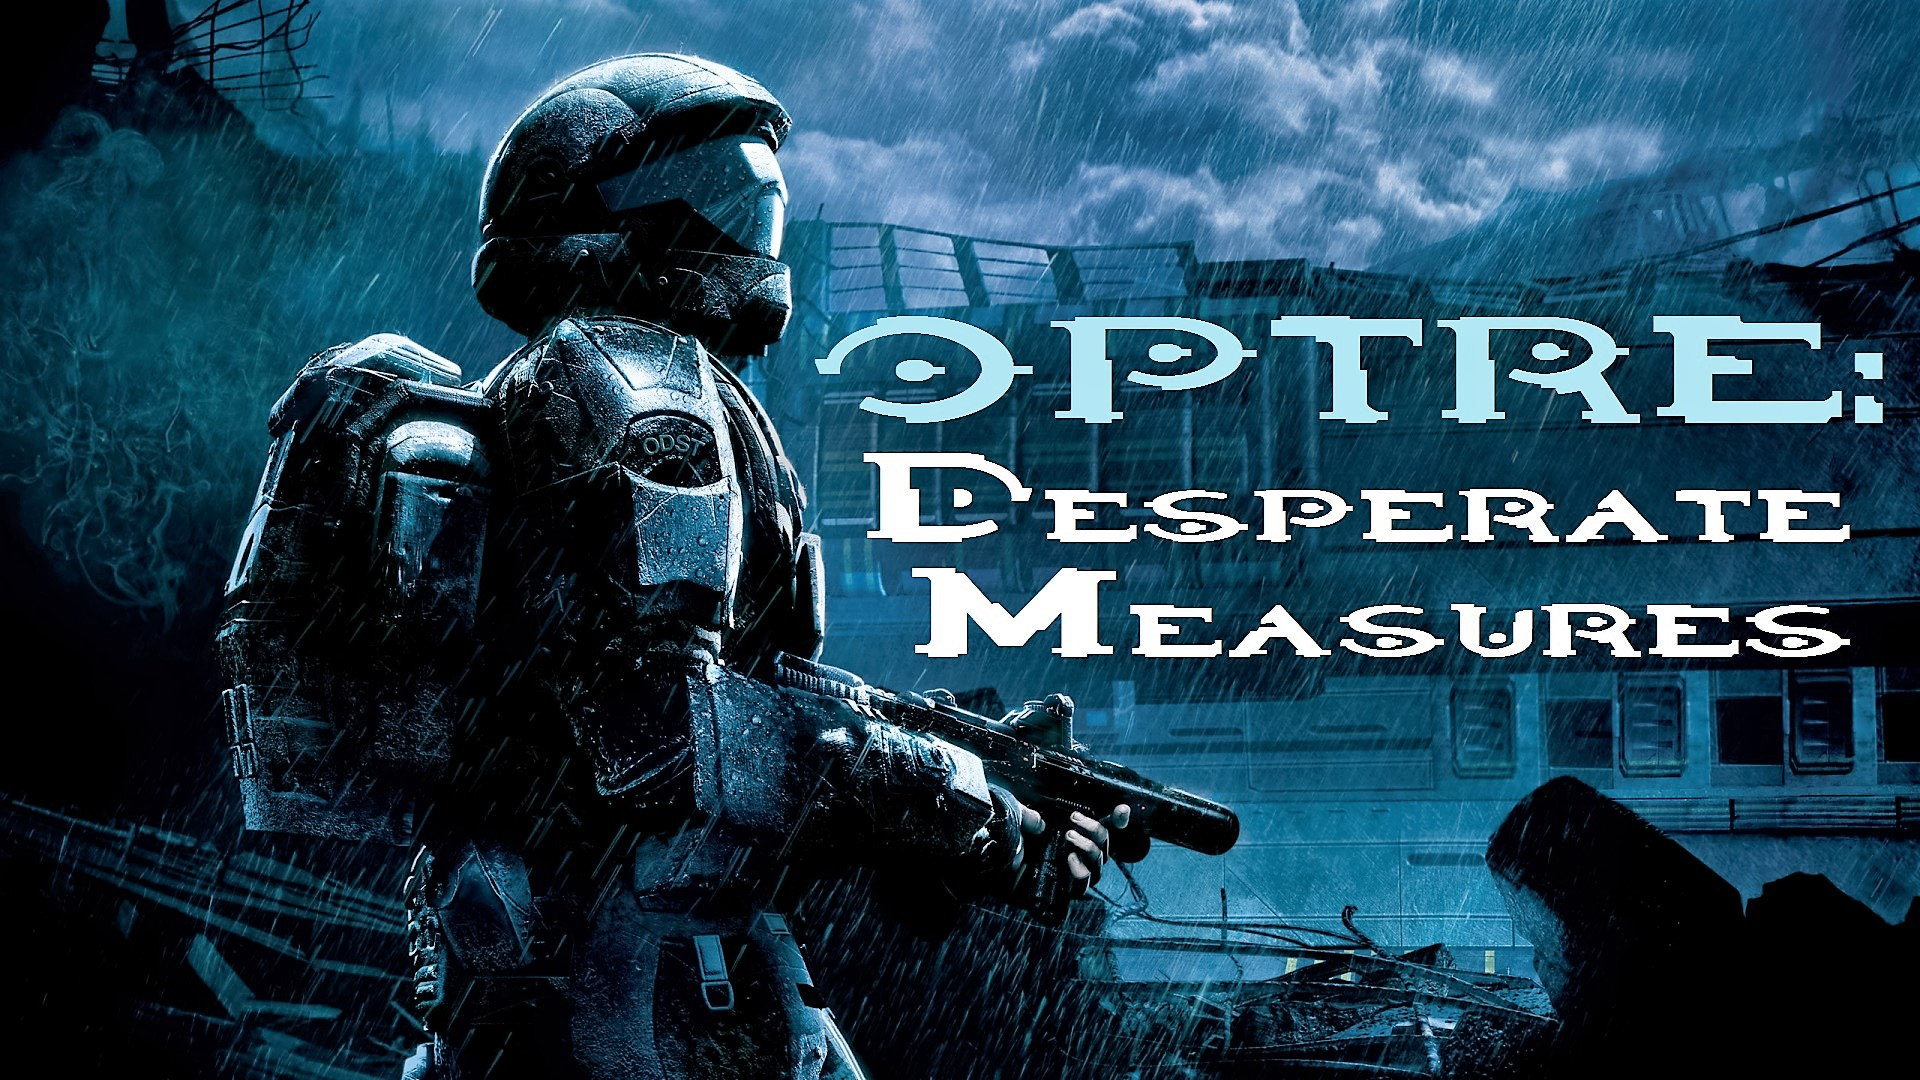 Steam Workshop :: OPTRE: Desperate Measures